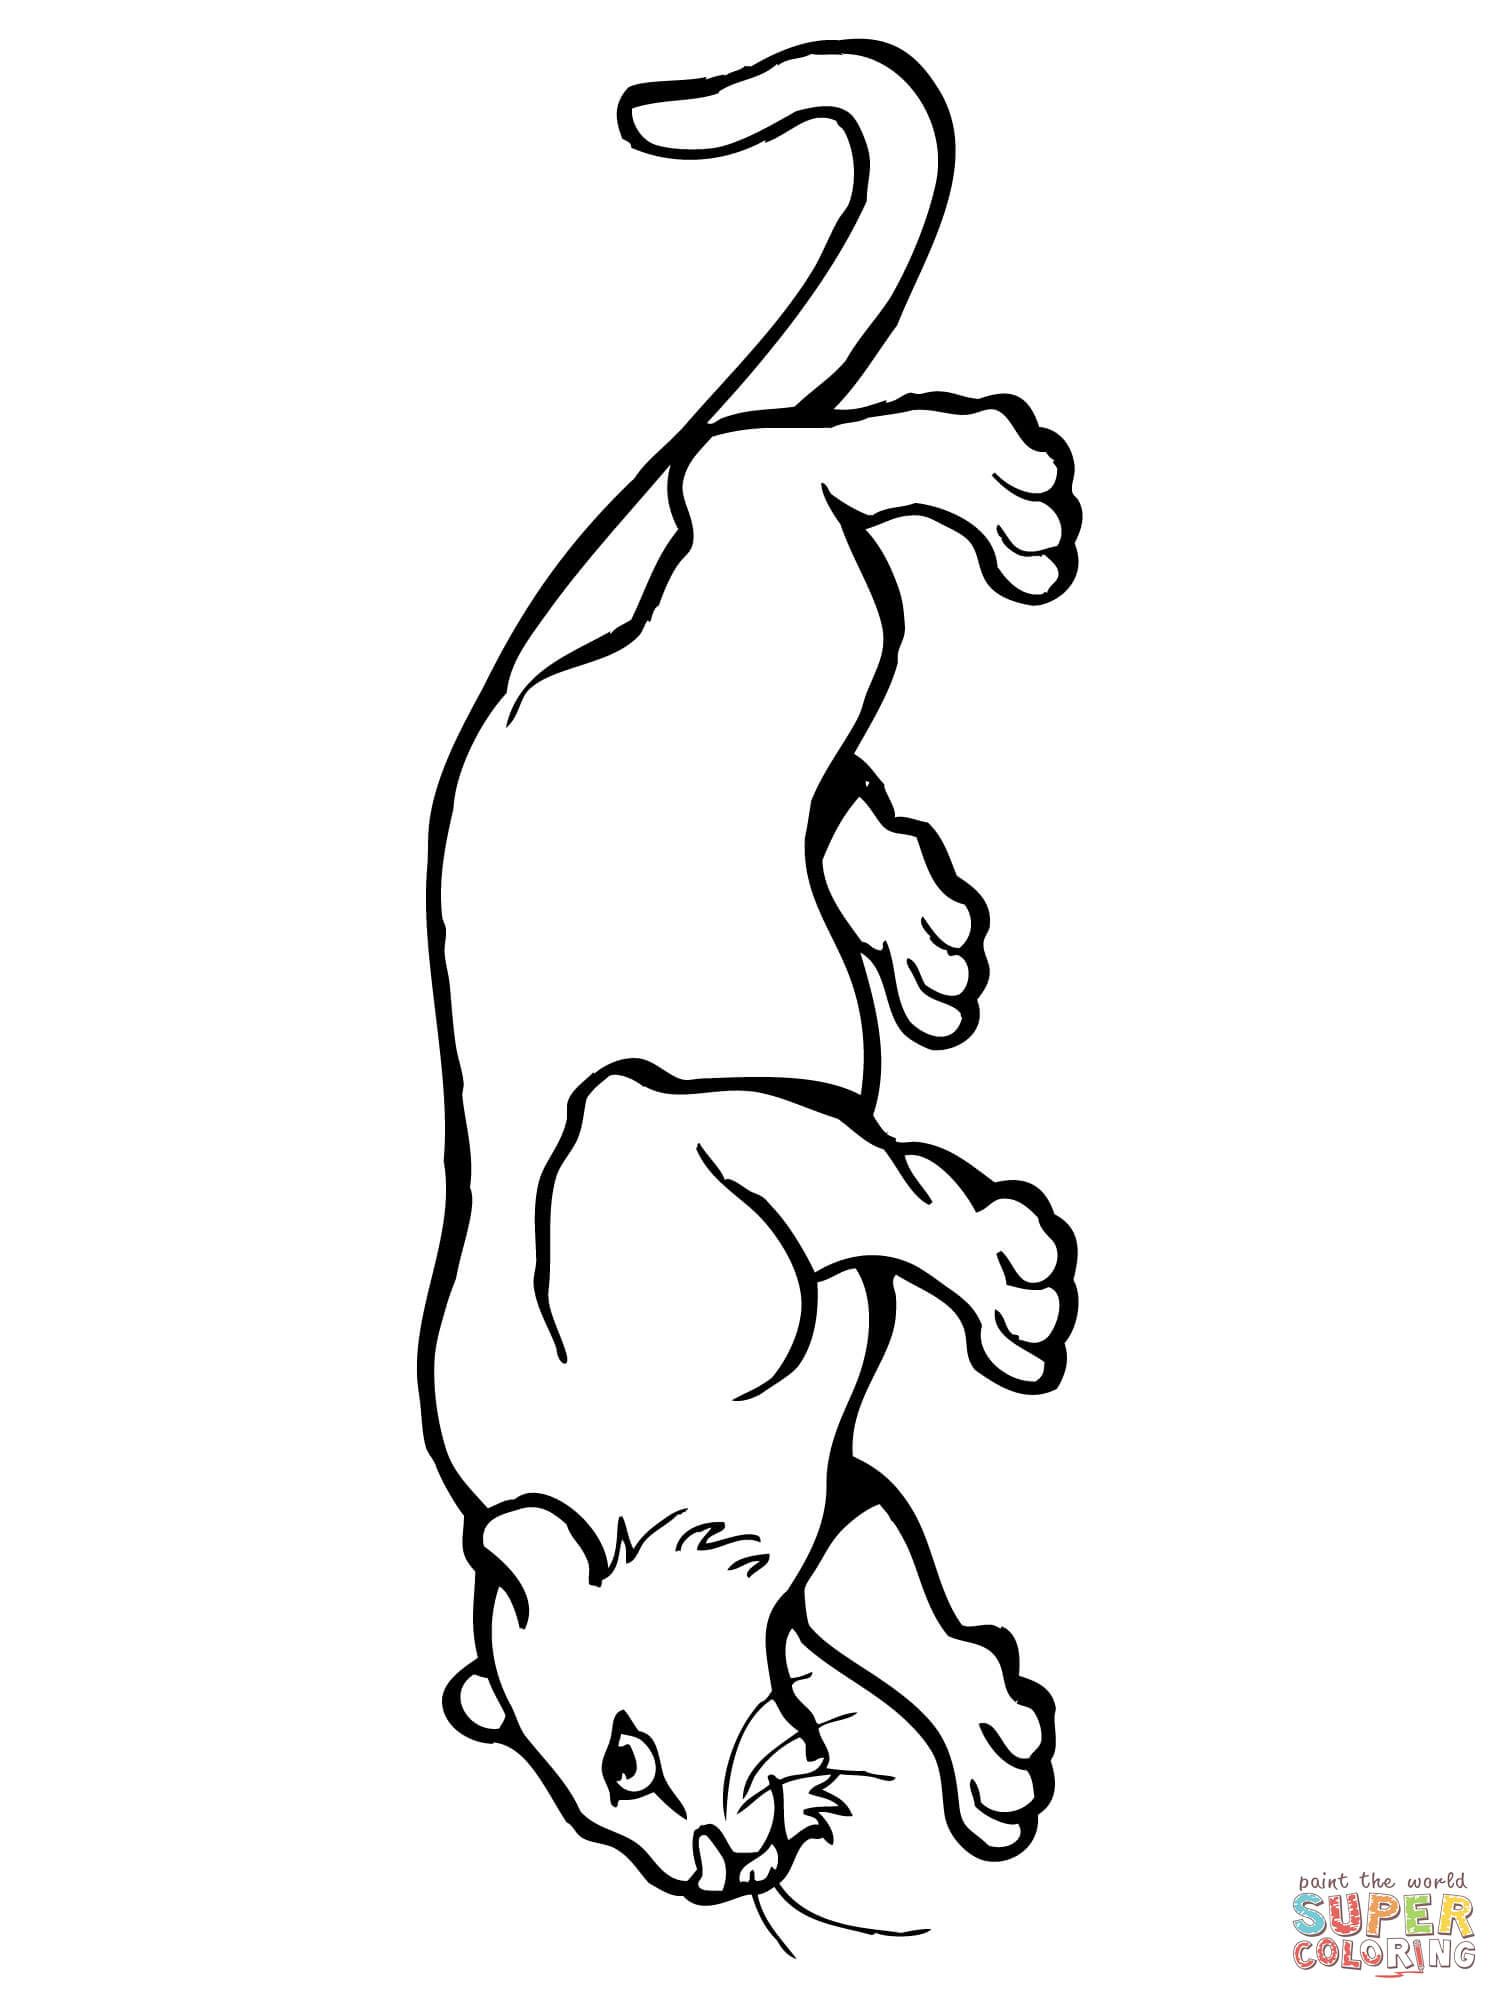 mountain lion coloring pages mountain lion coloring page coloring pages for kids and lion mountain coloring pages